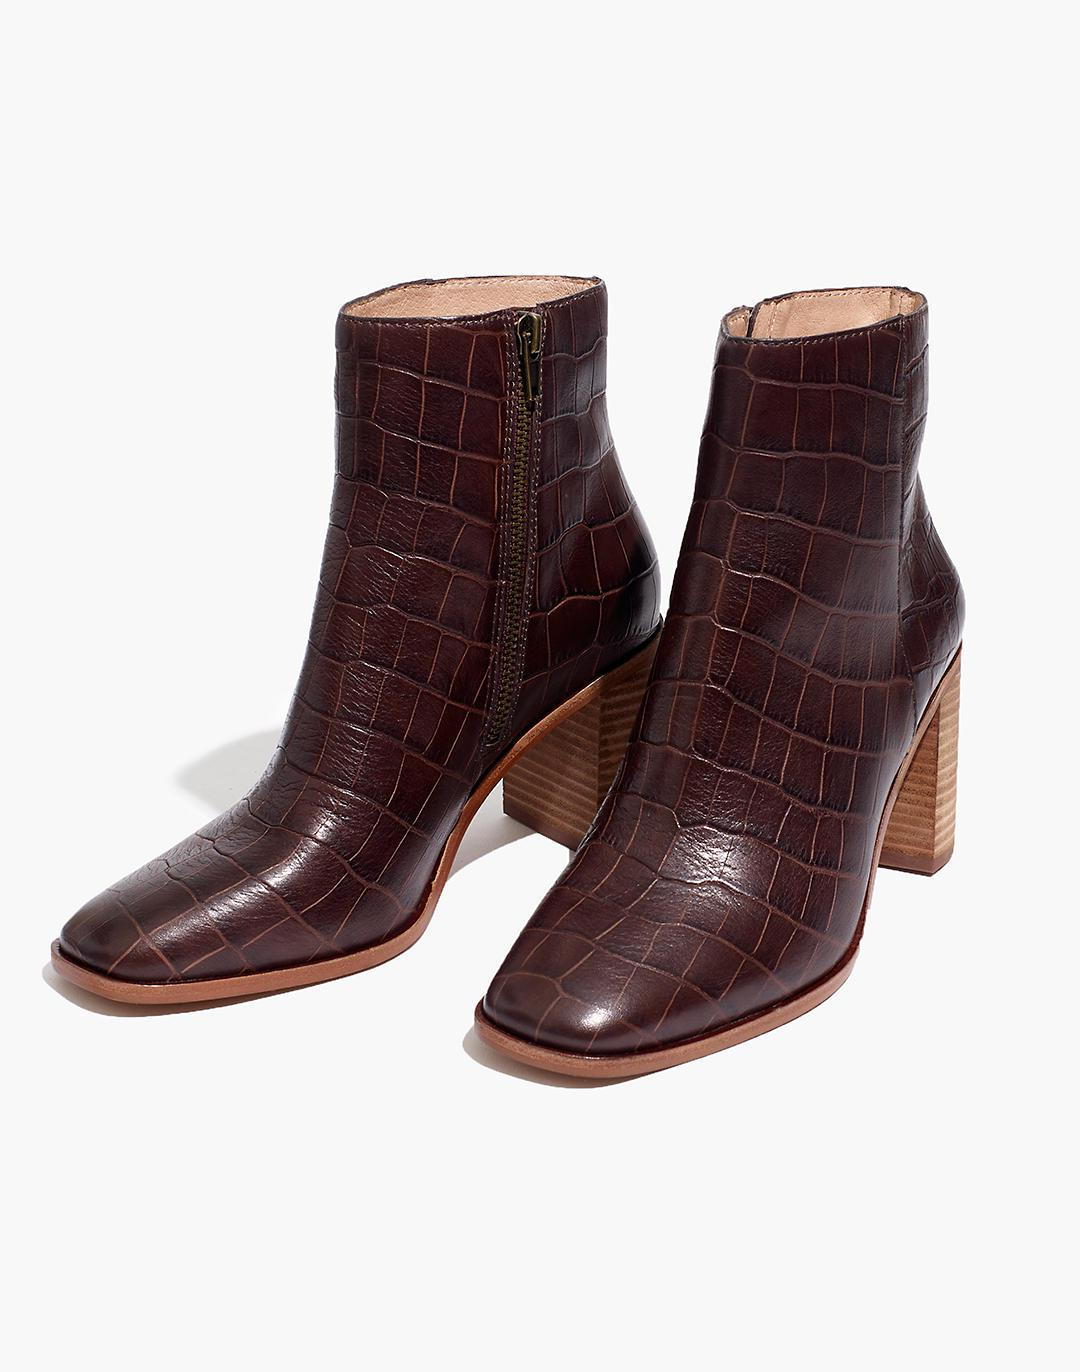 The Greer Boot in Croc Embossed Leather